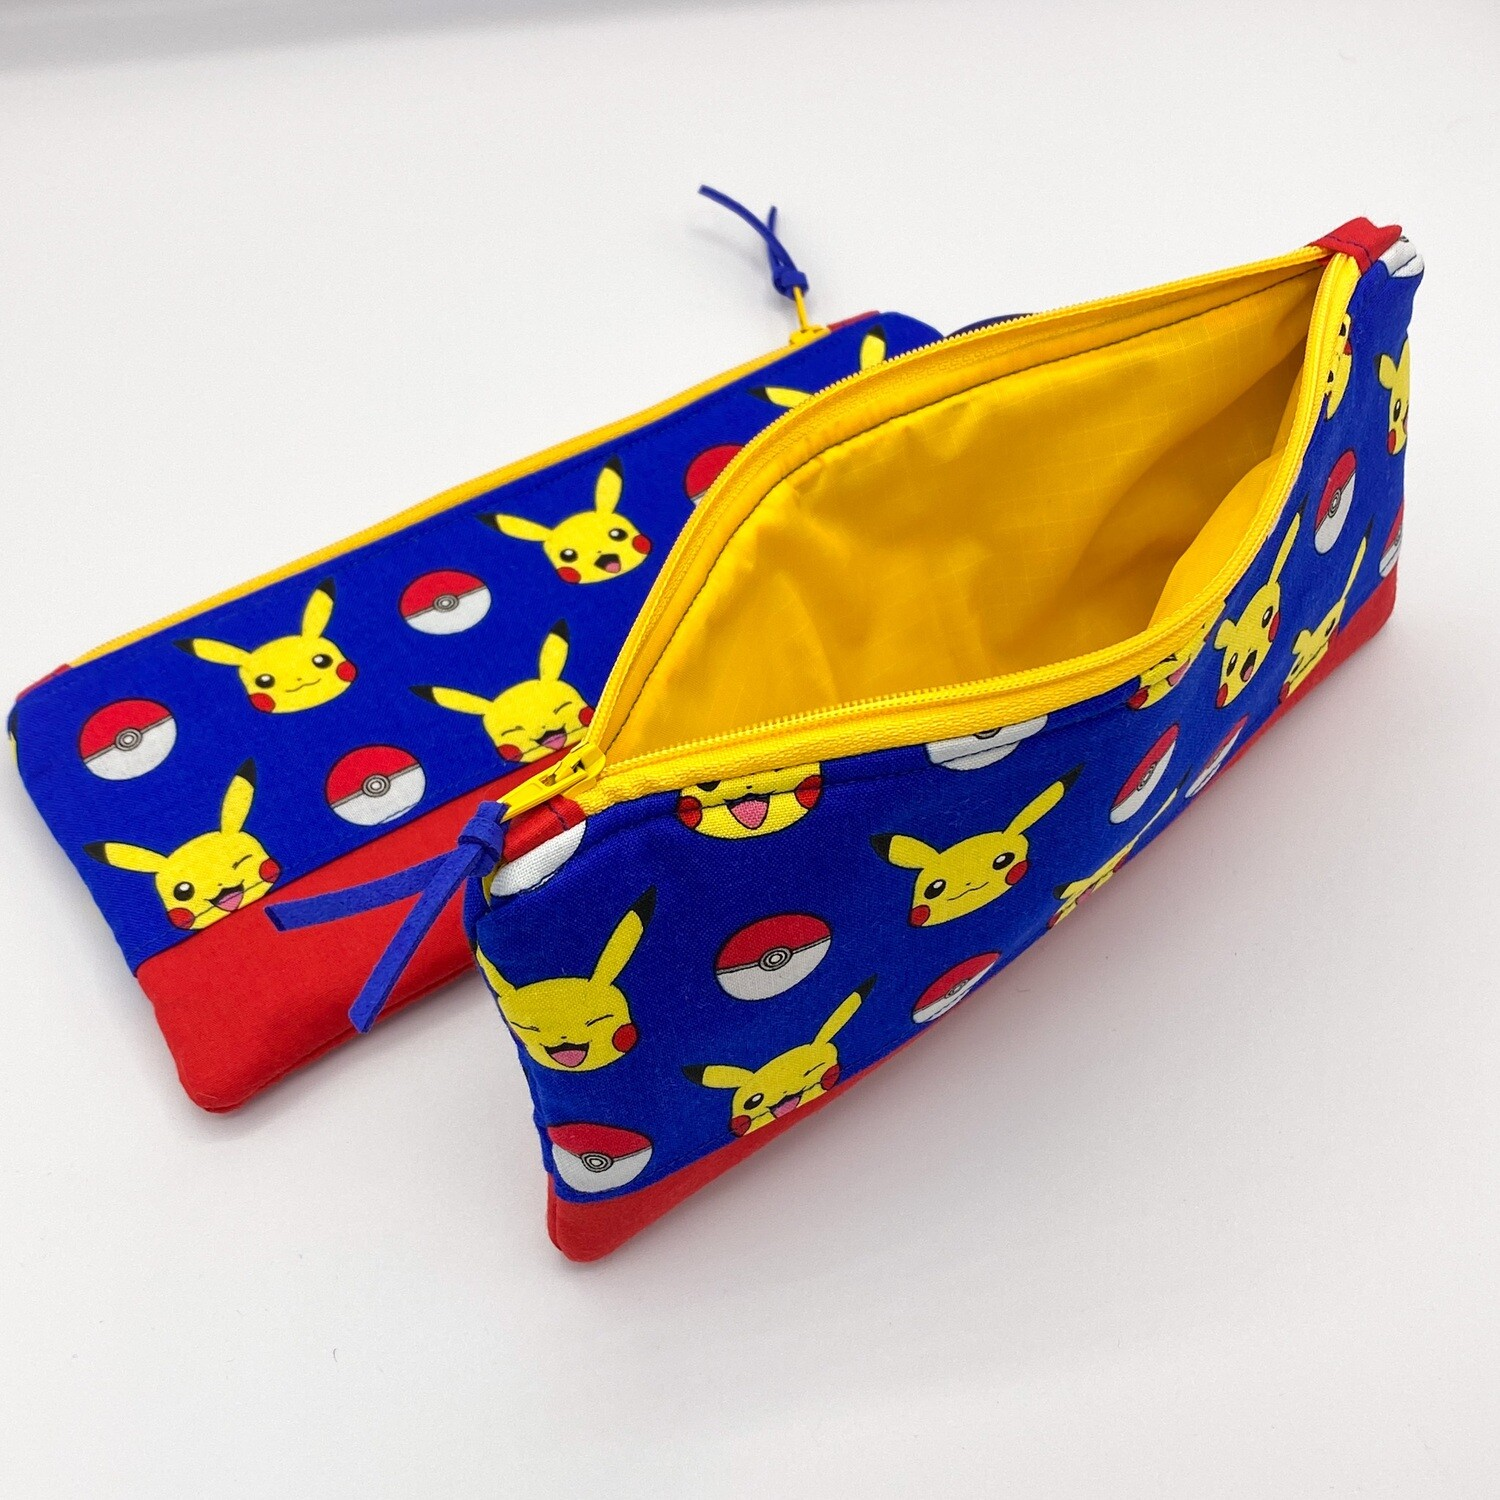 Pokémon Handmade Flat Zipper Pencil / Makeup Pouch, Fully lined with Easy Clean Ripstop